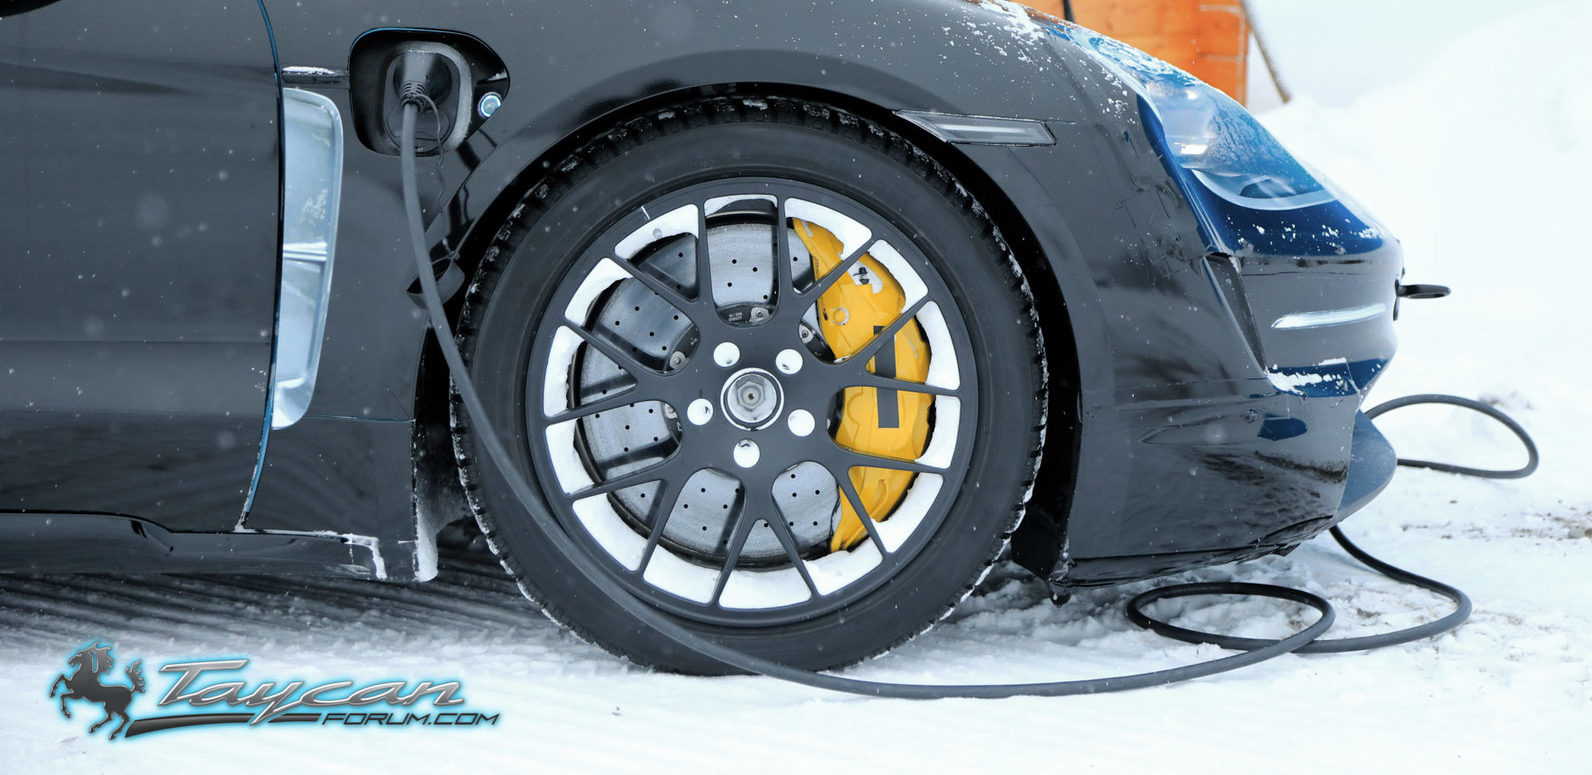 Porsche-Taycan-Prototype-winter-9